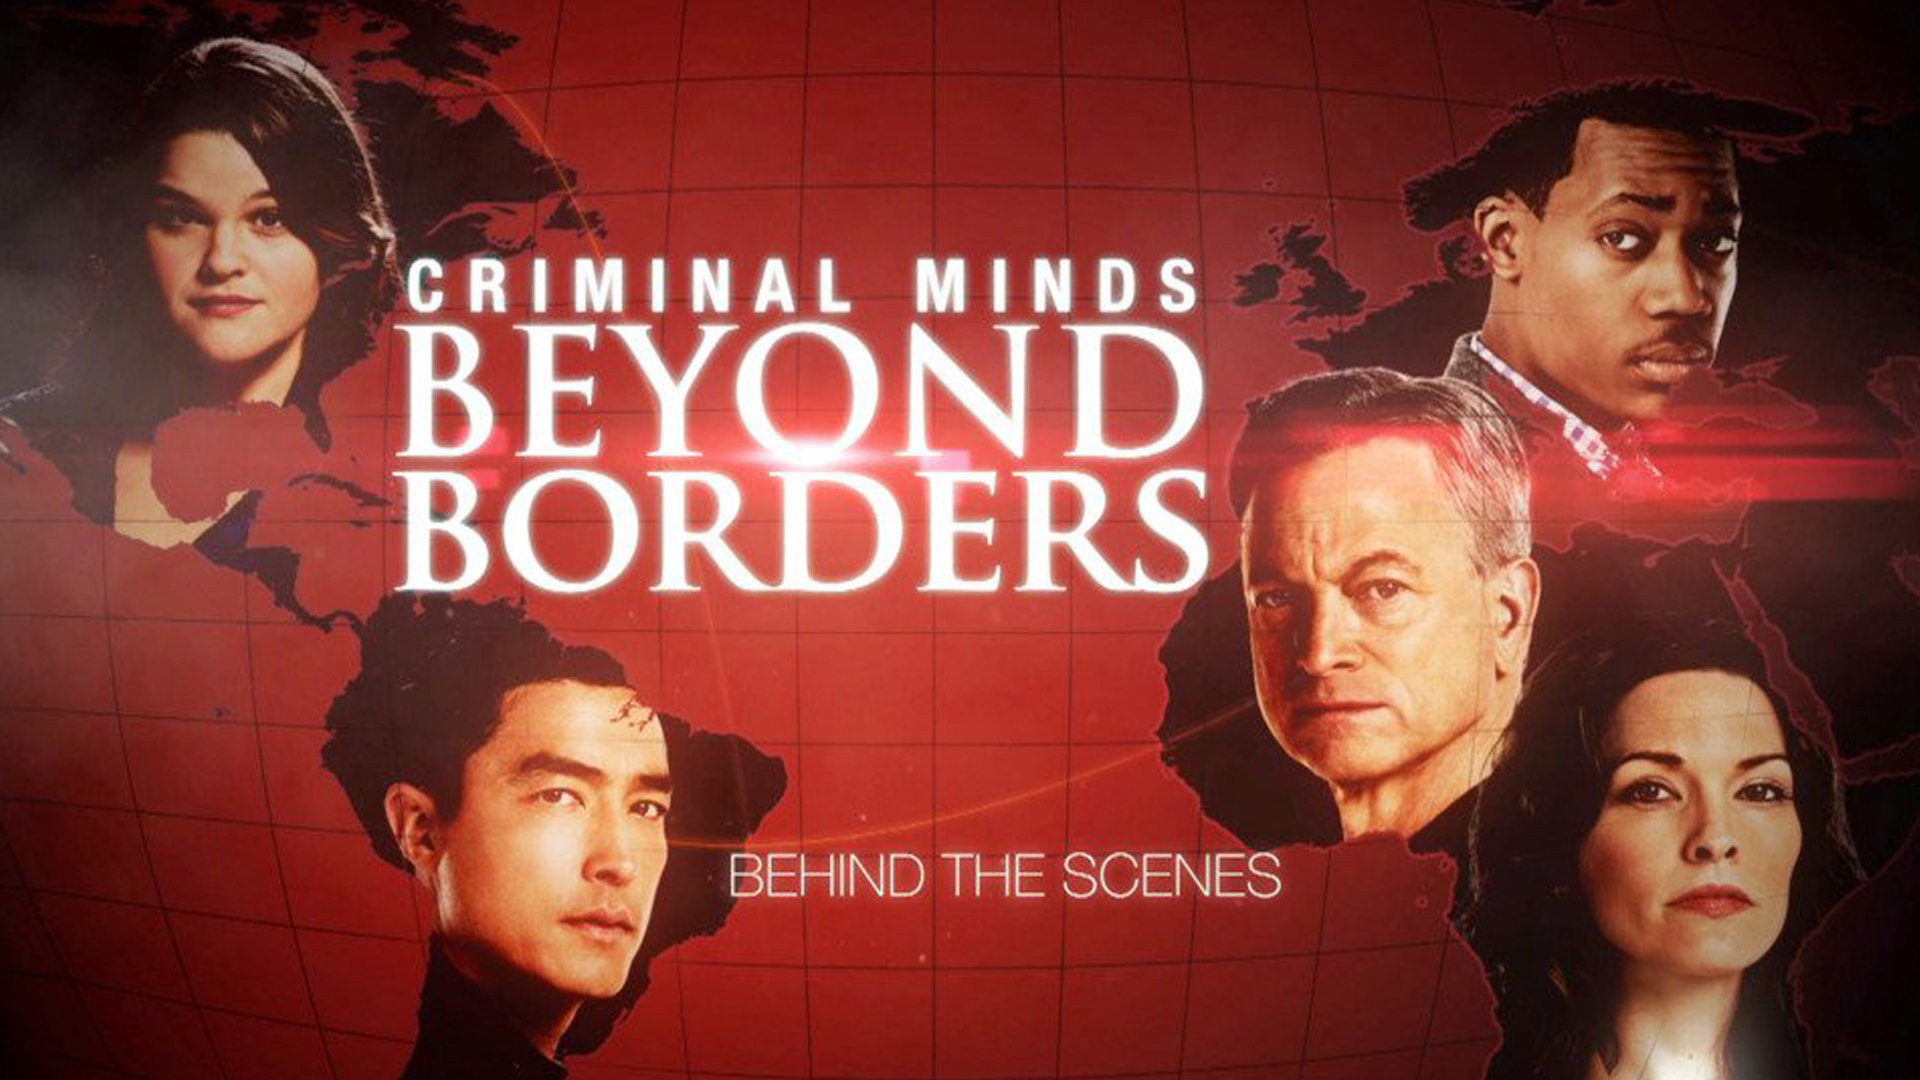 beyond borders imdb criminal minds